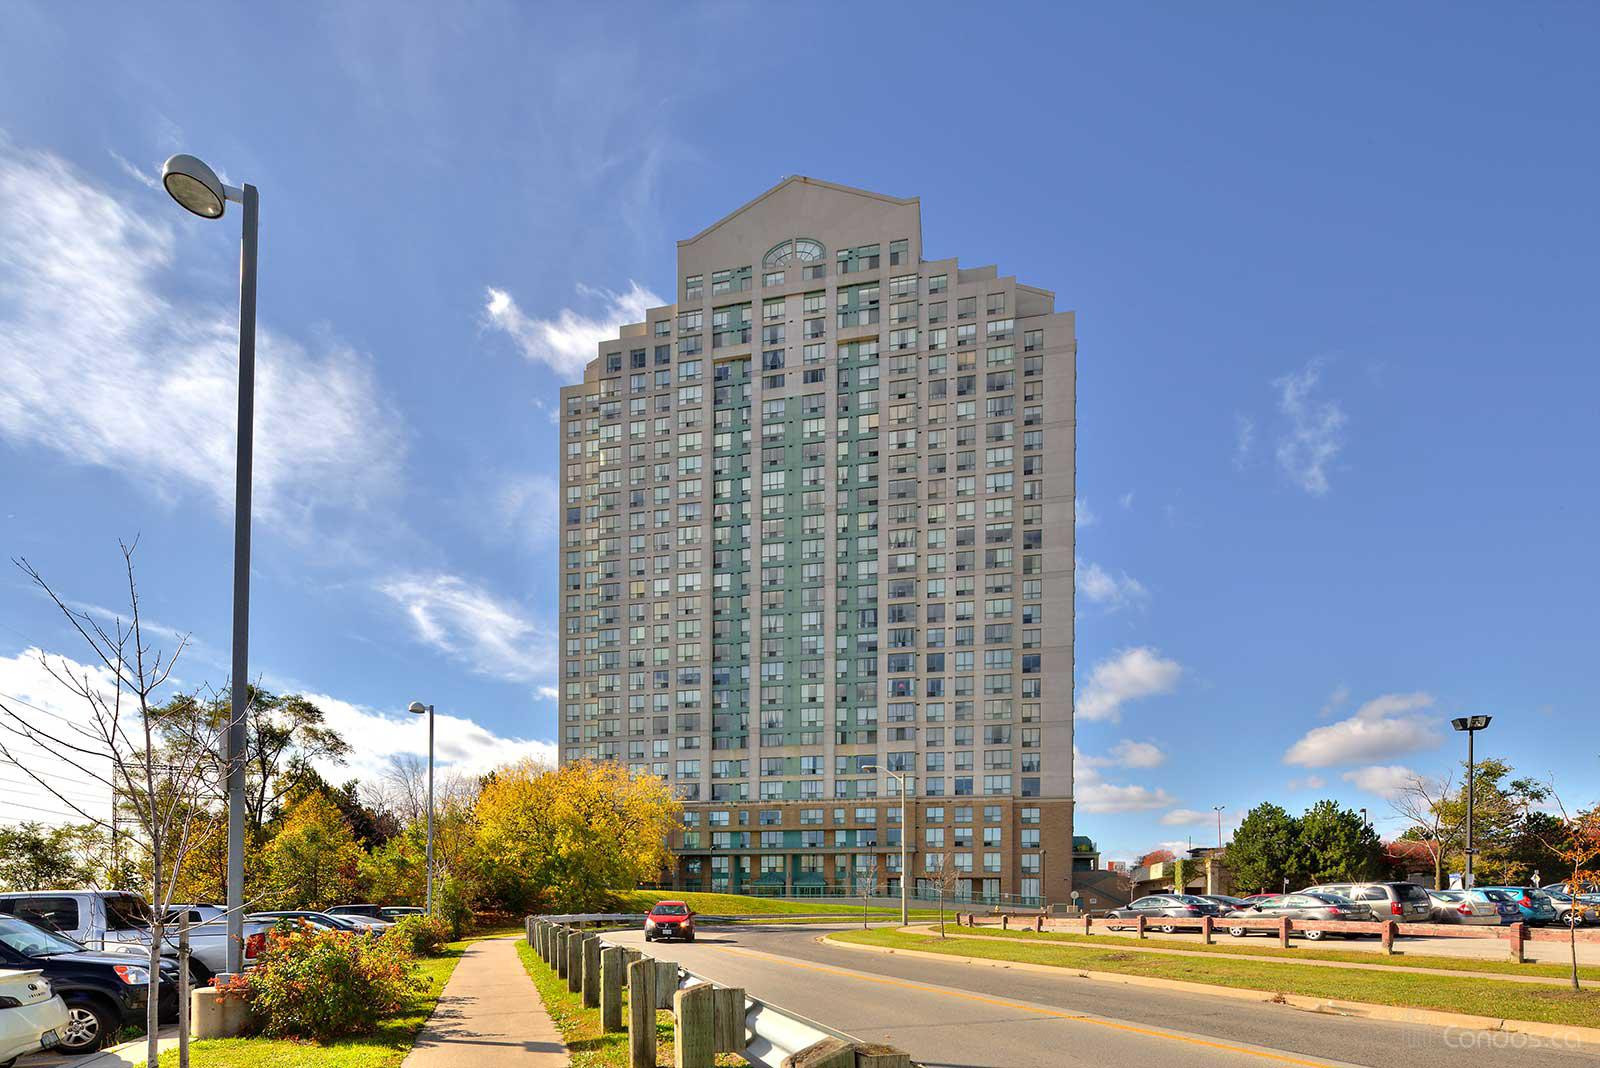 The Residences at Kingsgate at 101 Subway Crescent, Toronto 1